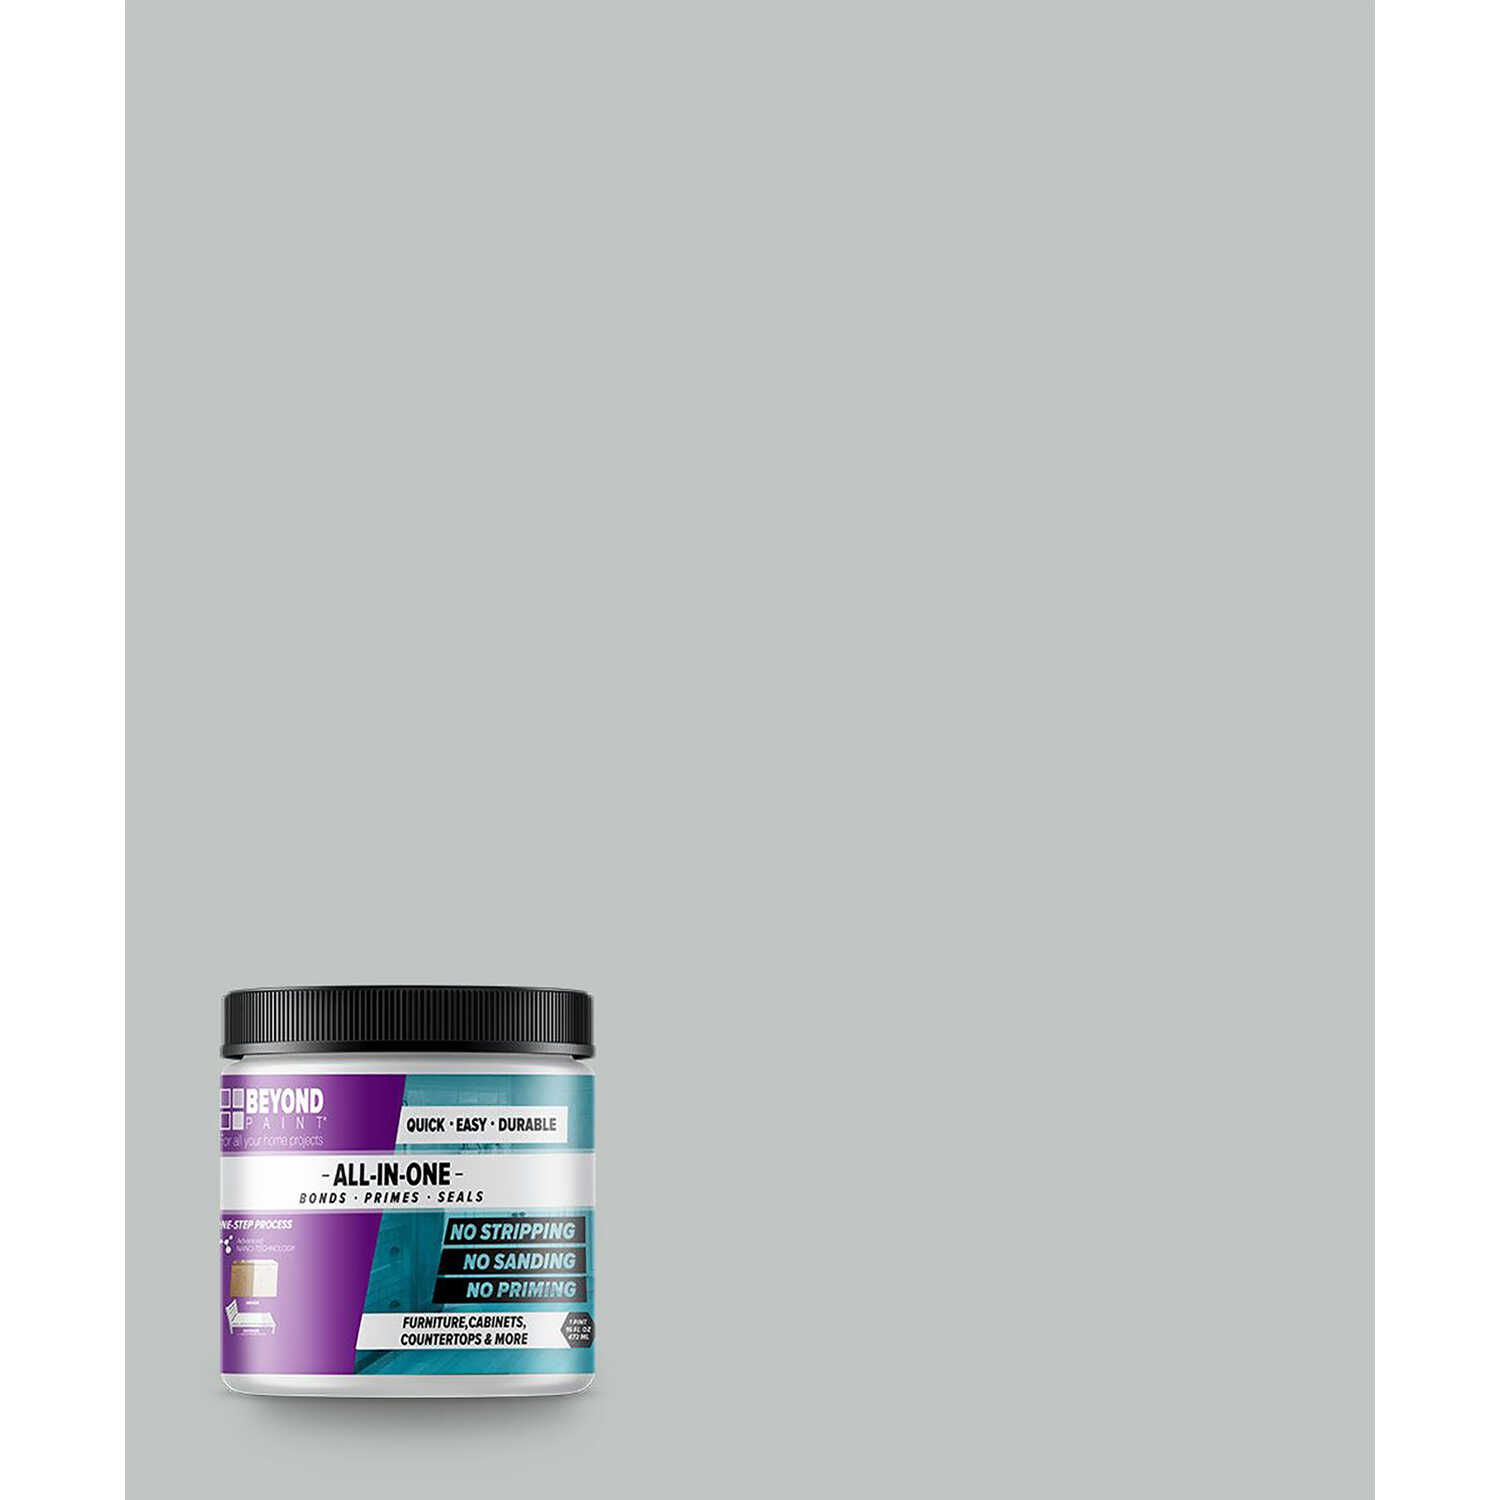 BEYOND PAINT  Matte  Ash  Acrylic  All-In-One Paint  1 pt.